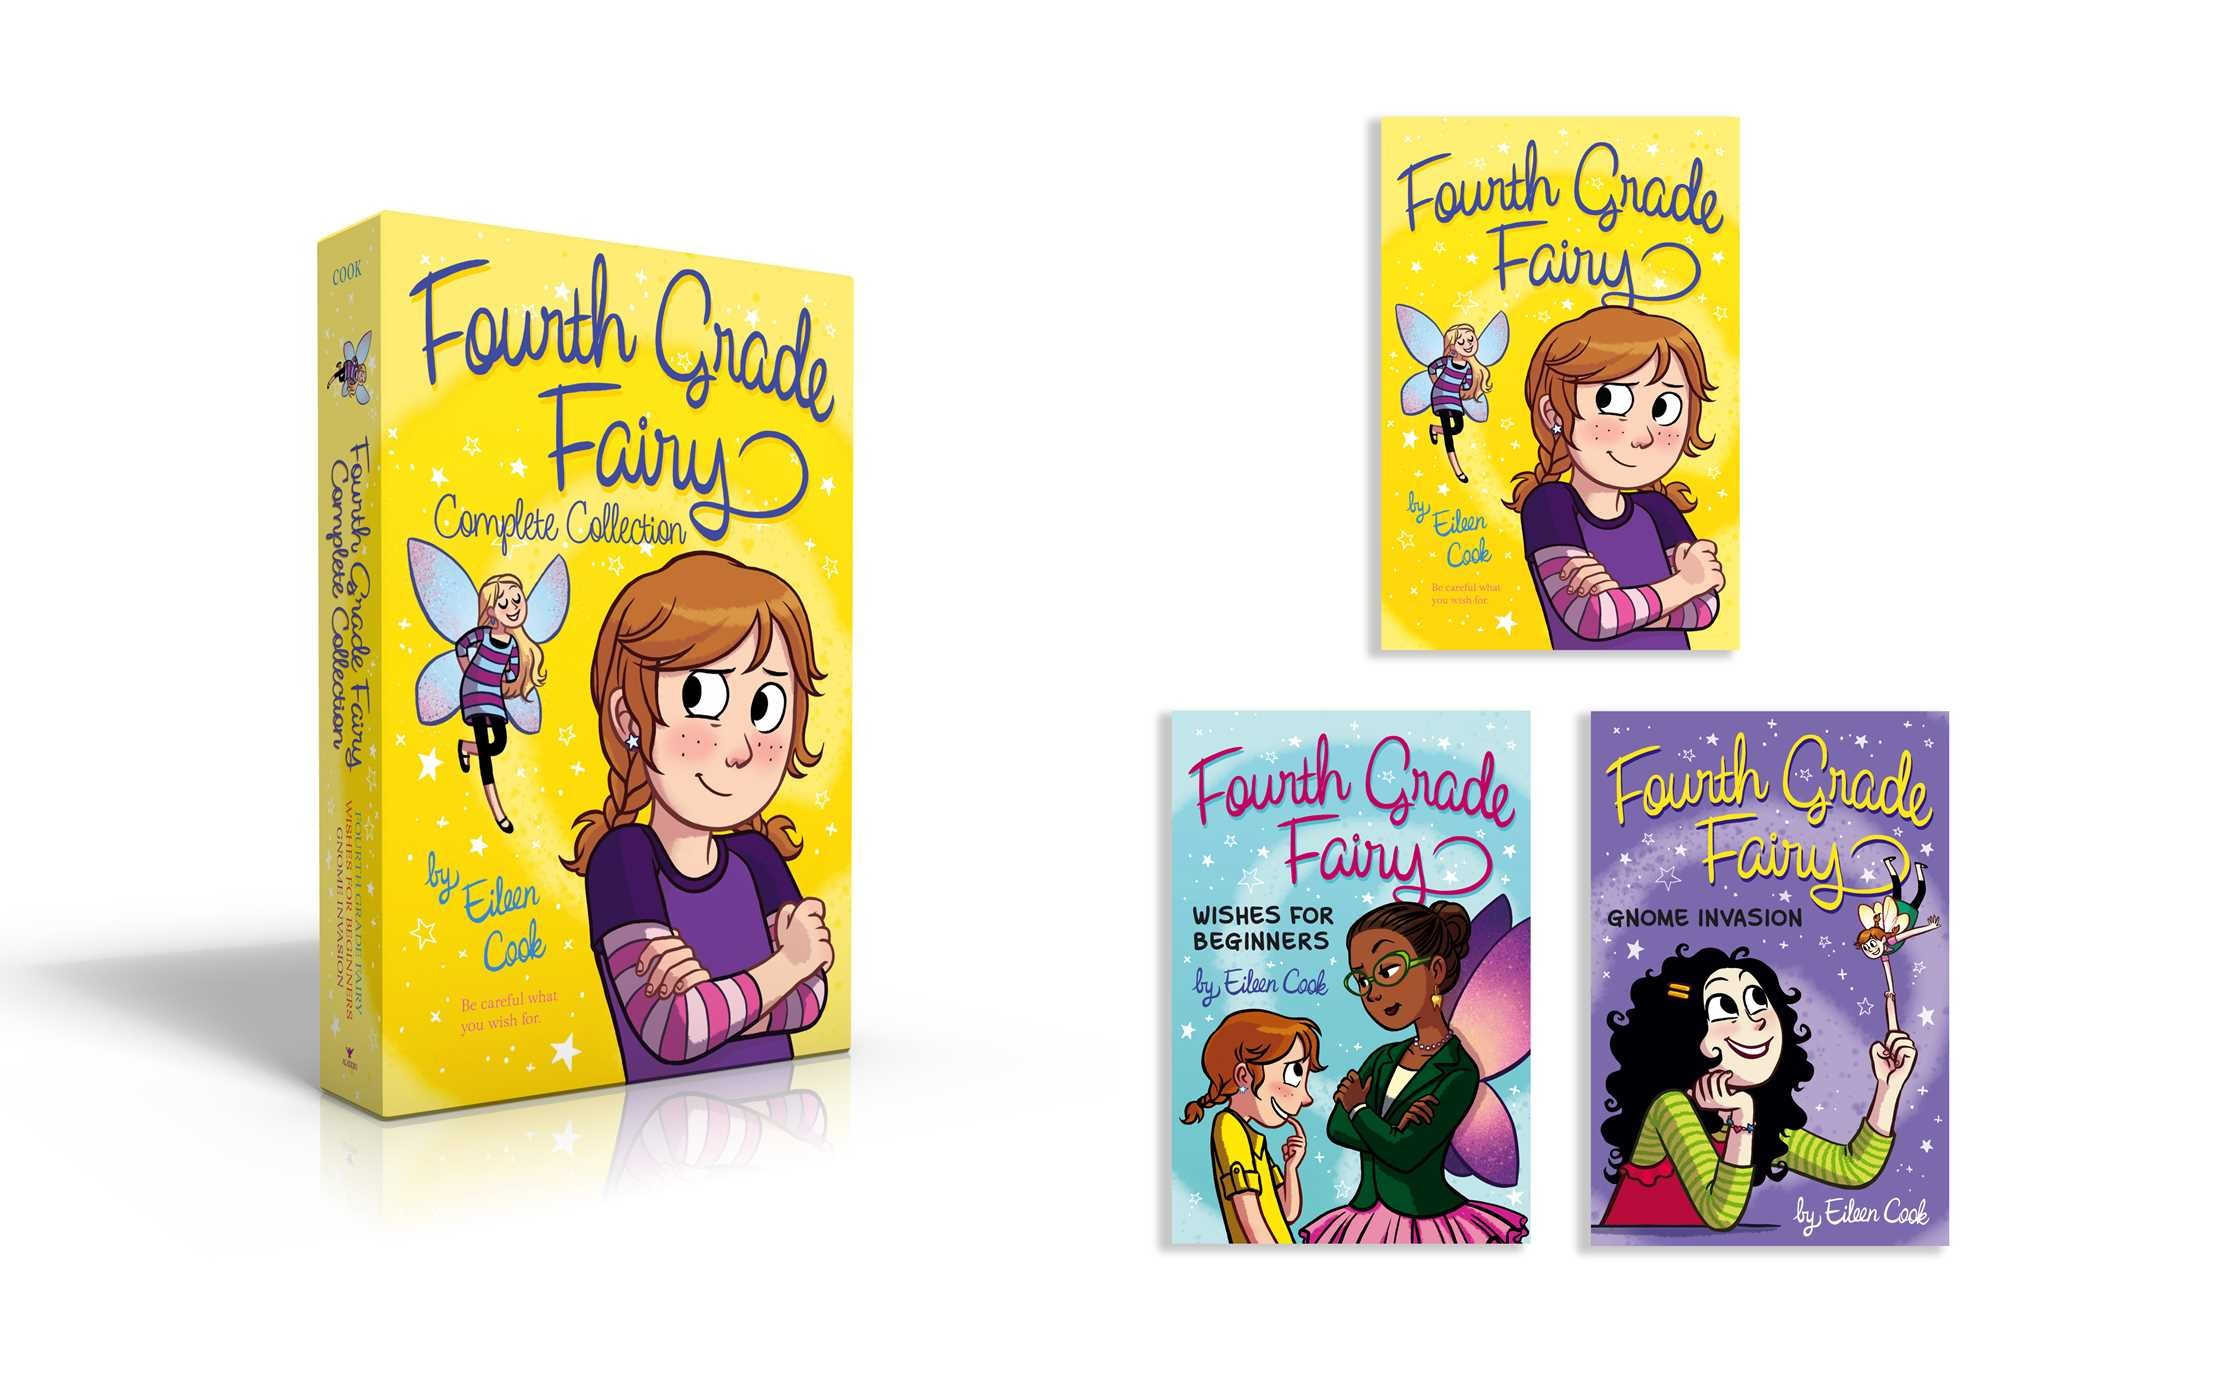 Fourth grade fairy complete collection 9781534416345.in01